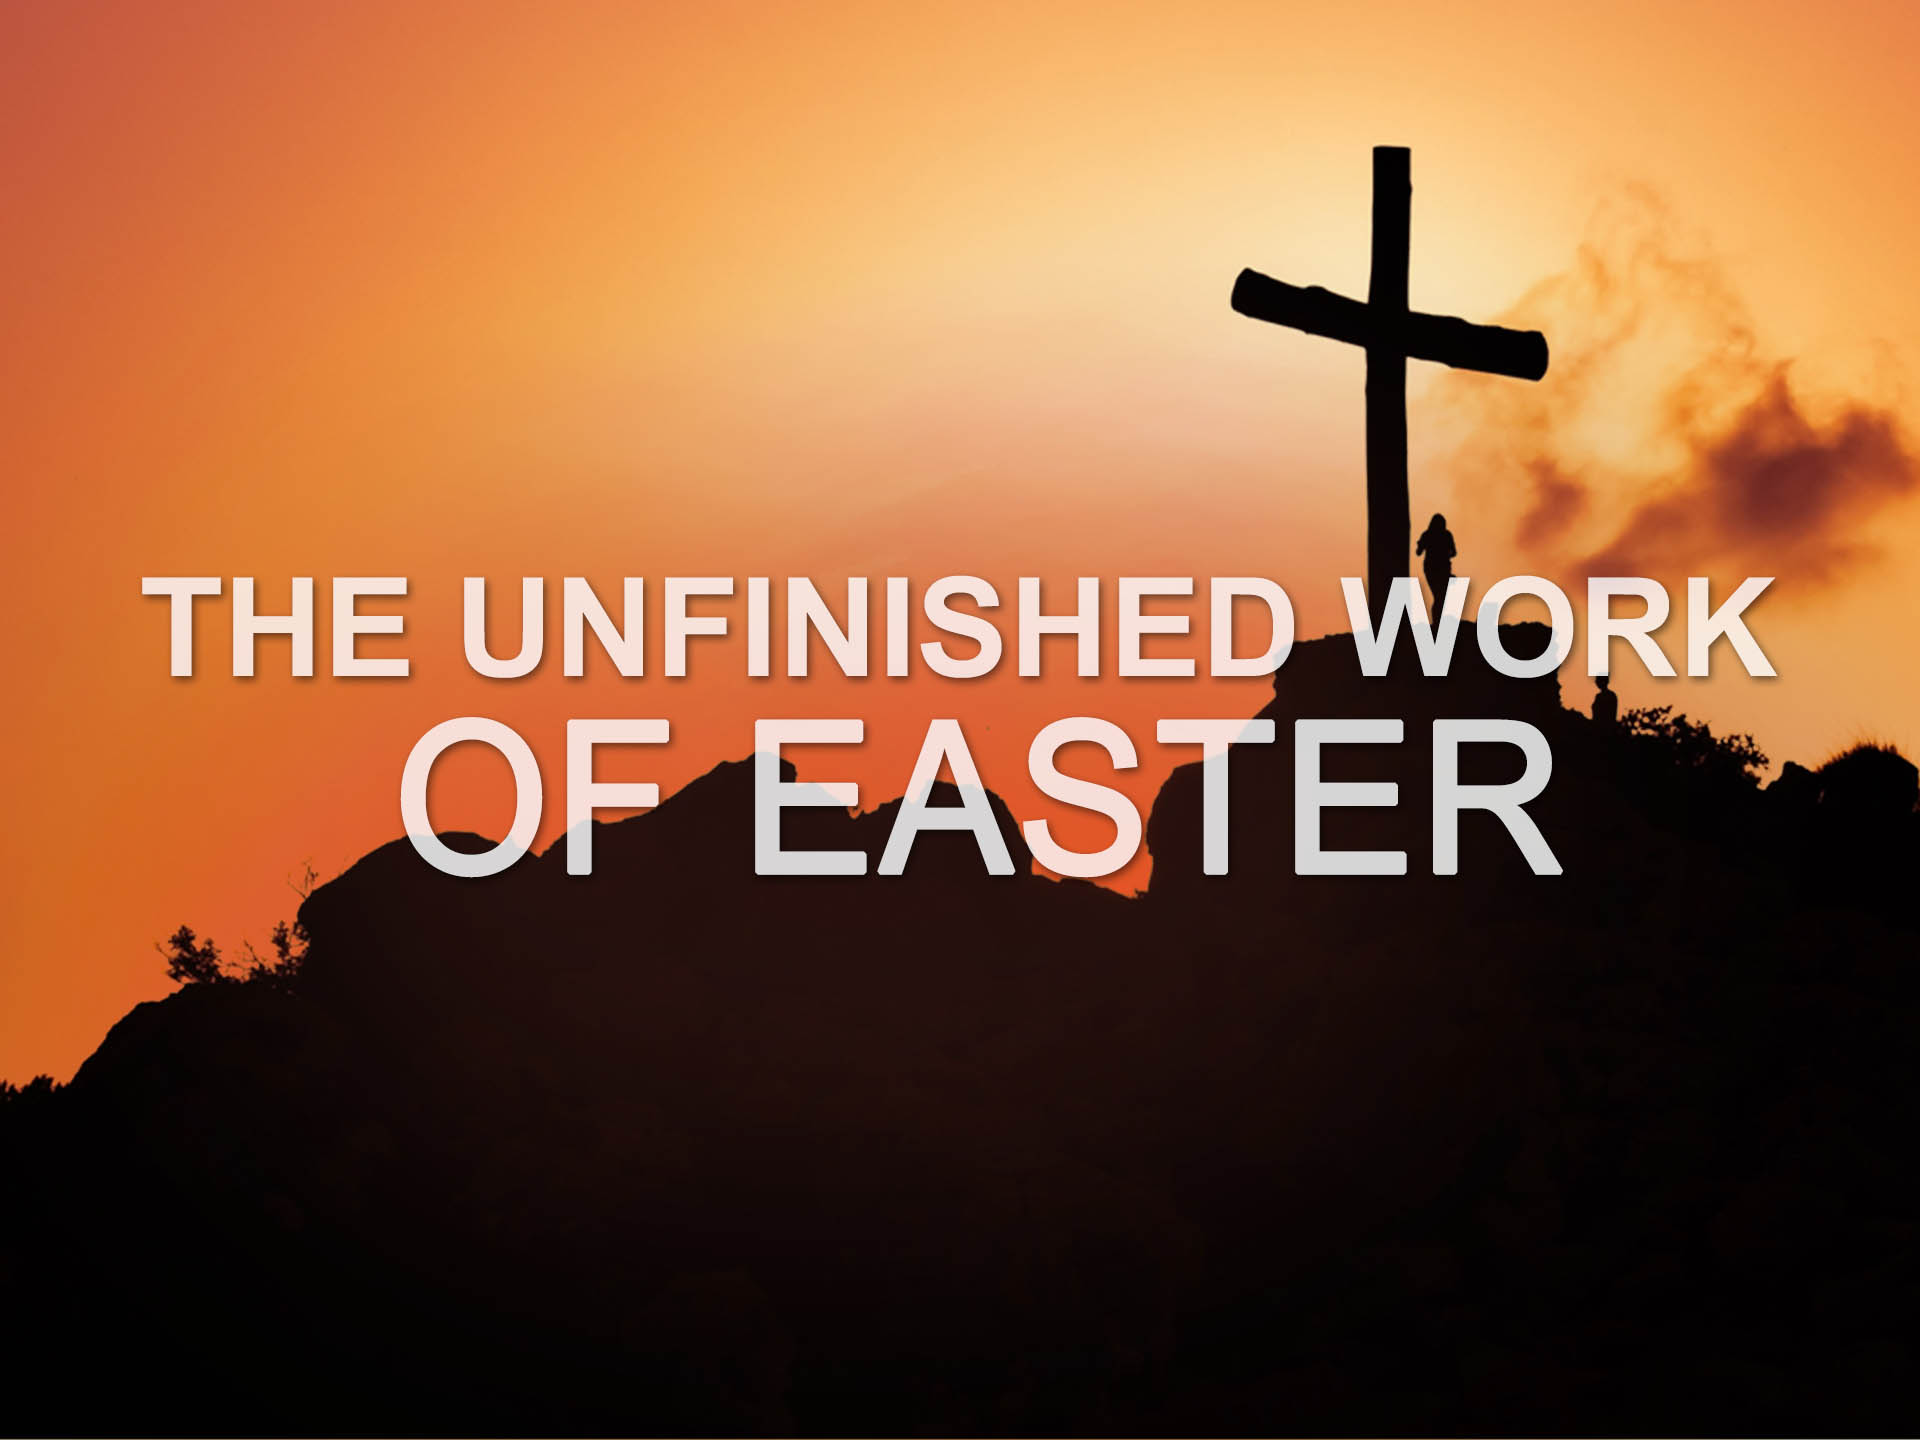 The Unfinished Work of Easter